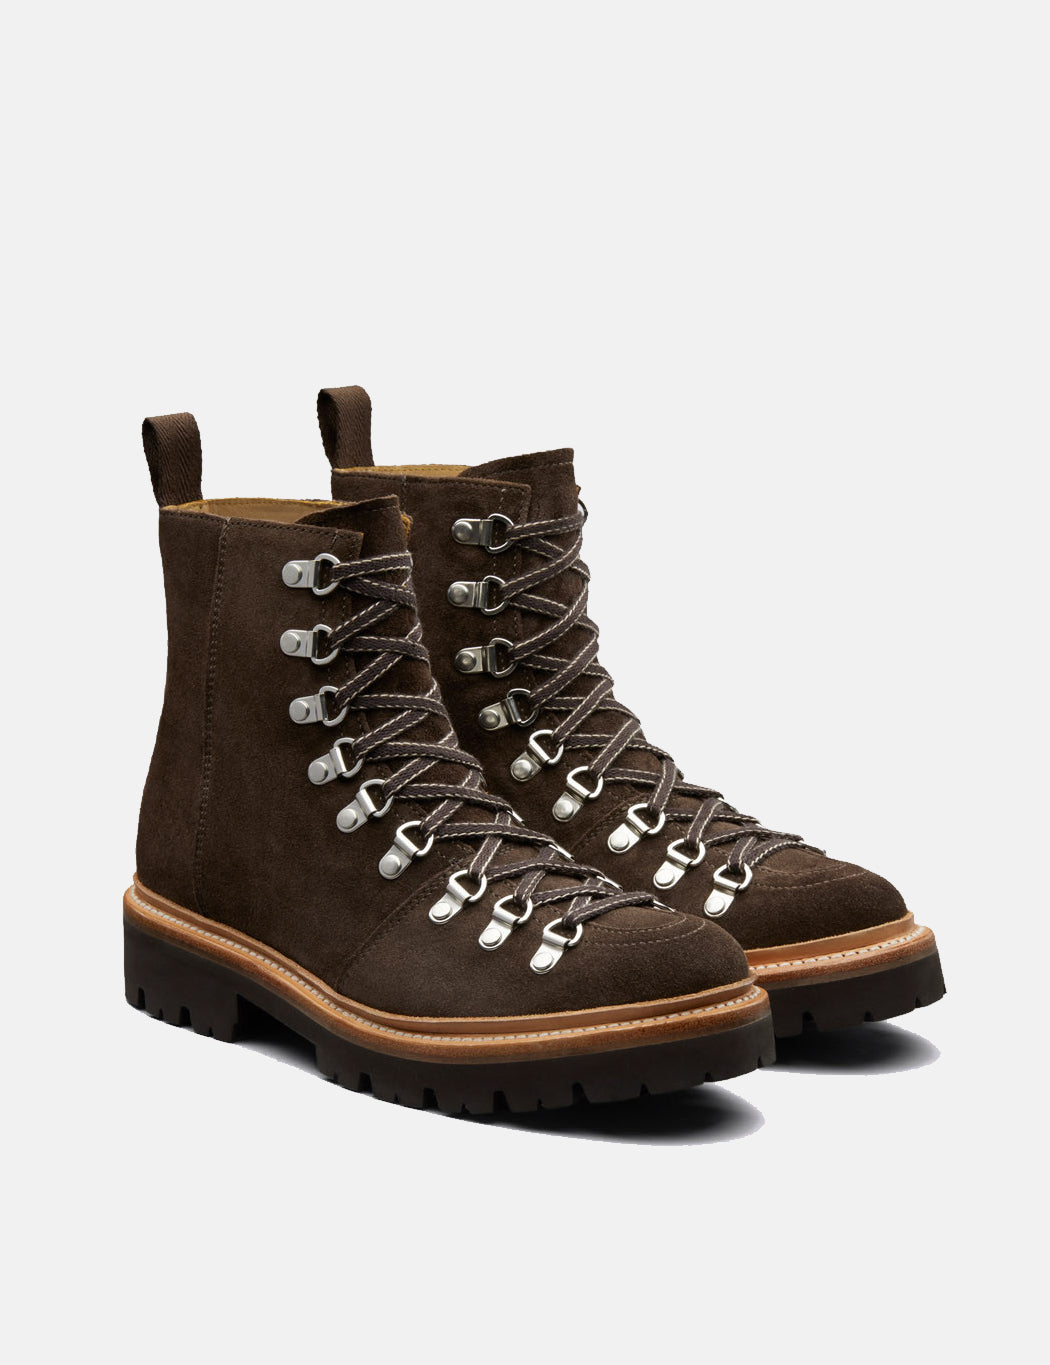 Womens Grenson Nanette Ski Boot (Suede) - Peat Brown   URBAN EXCESS.